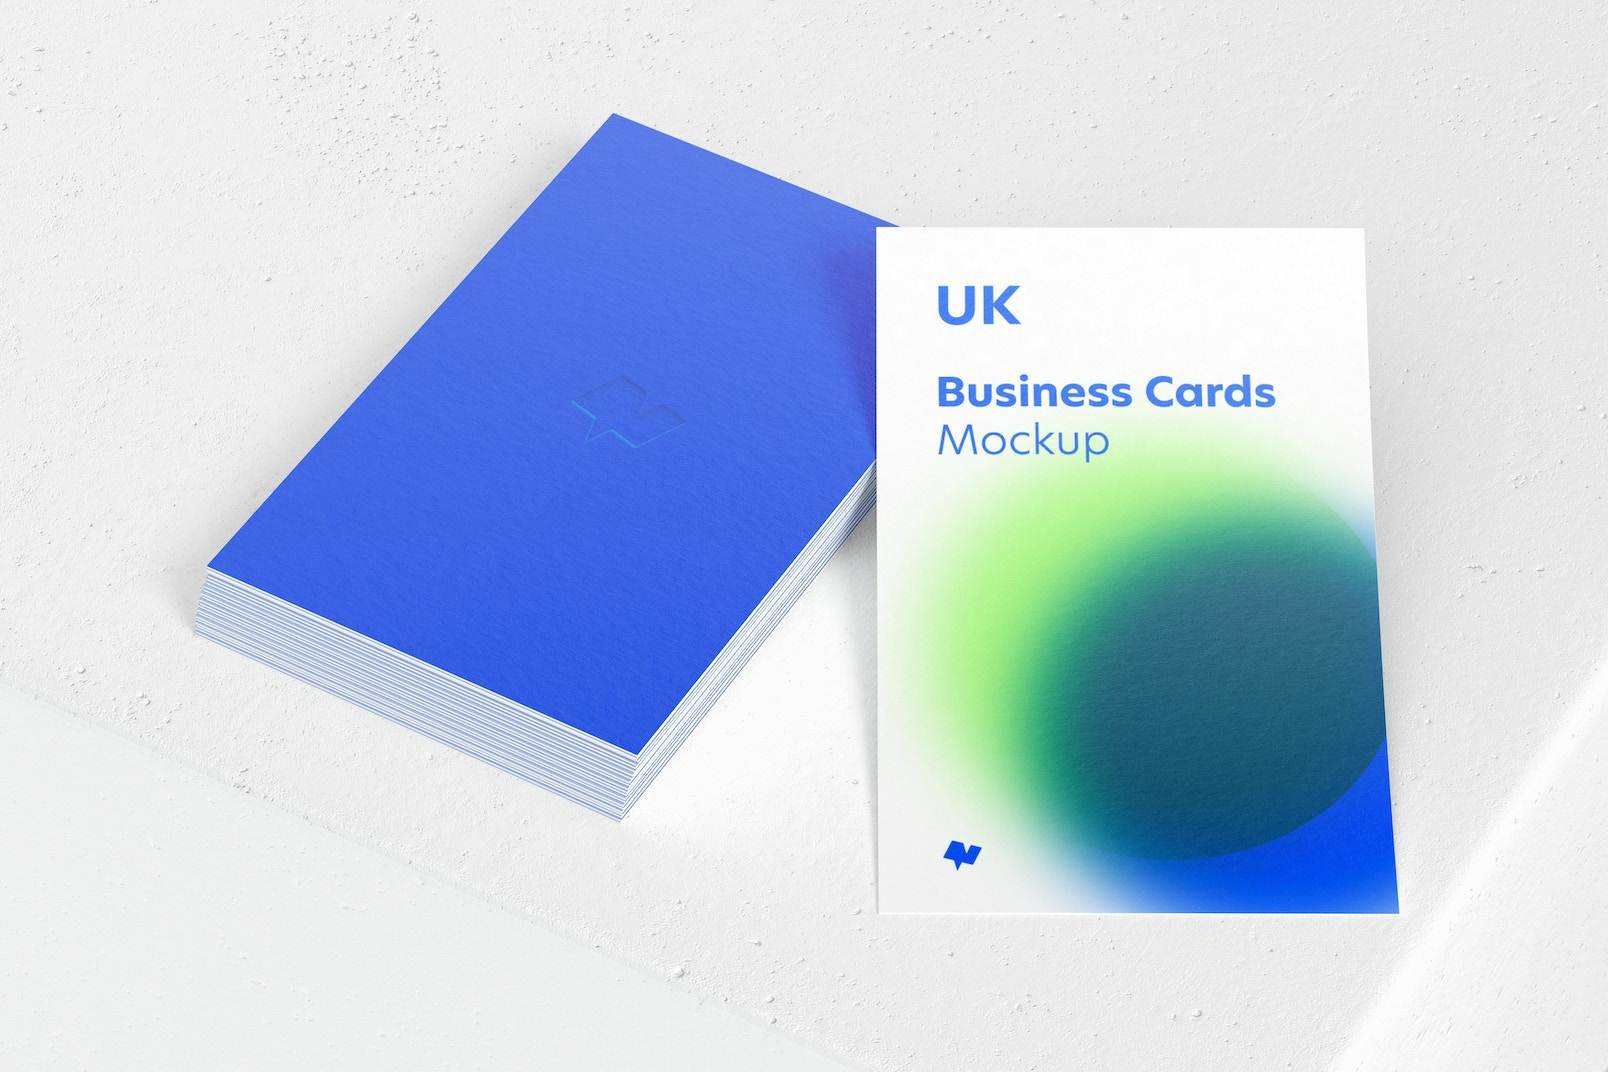 UK Portrait Business Cards Mockup, Perspective View